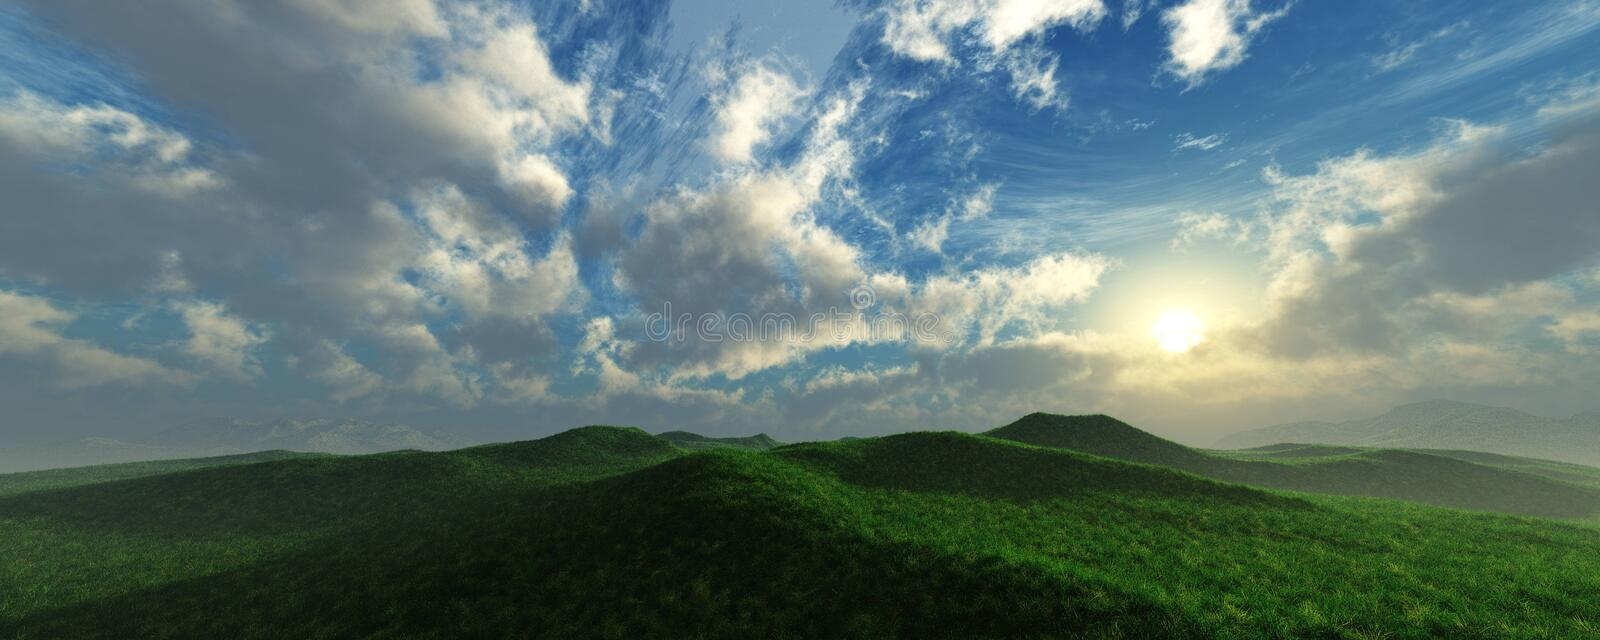 Panorama of the hilly landscape stock photo